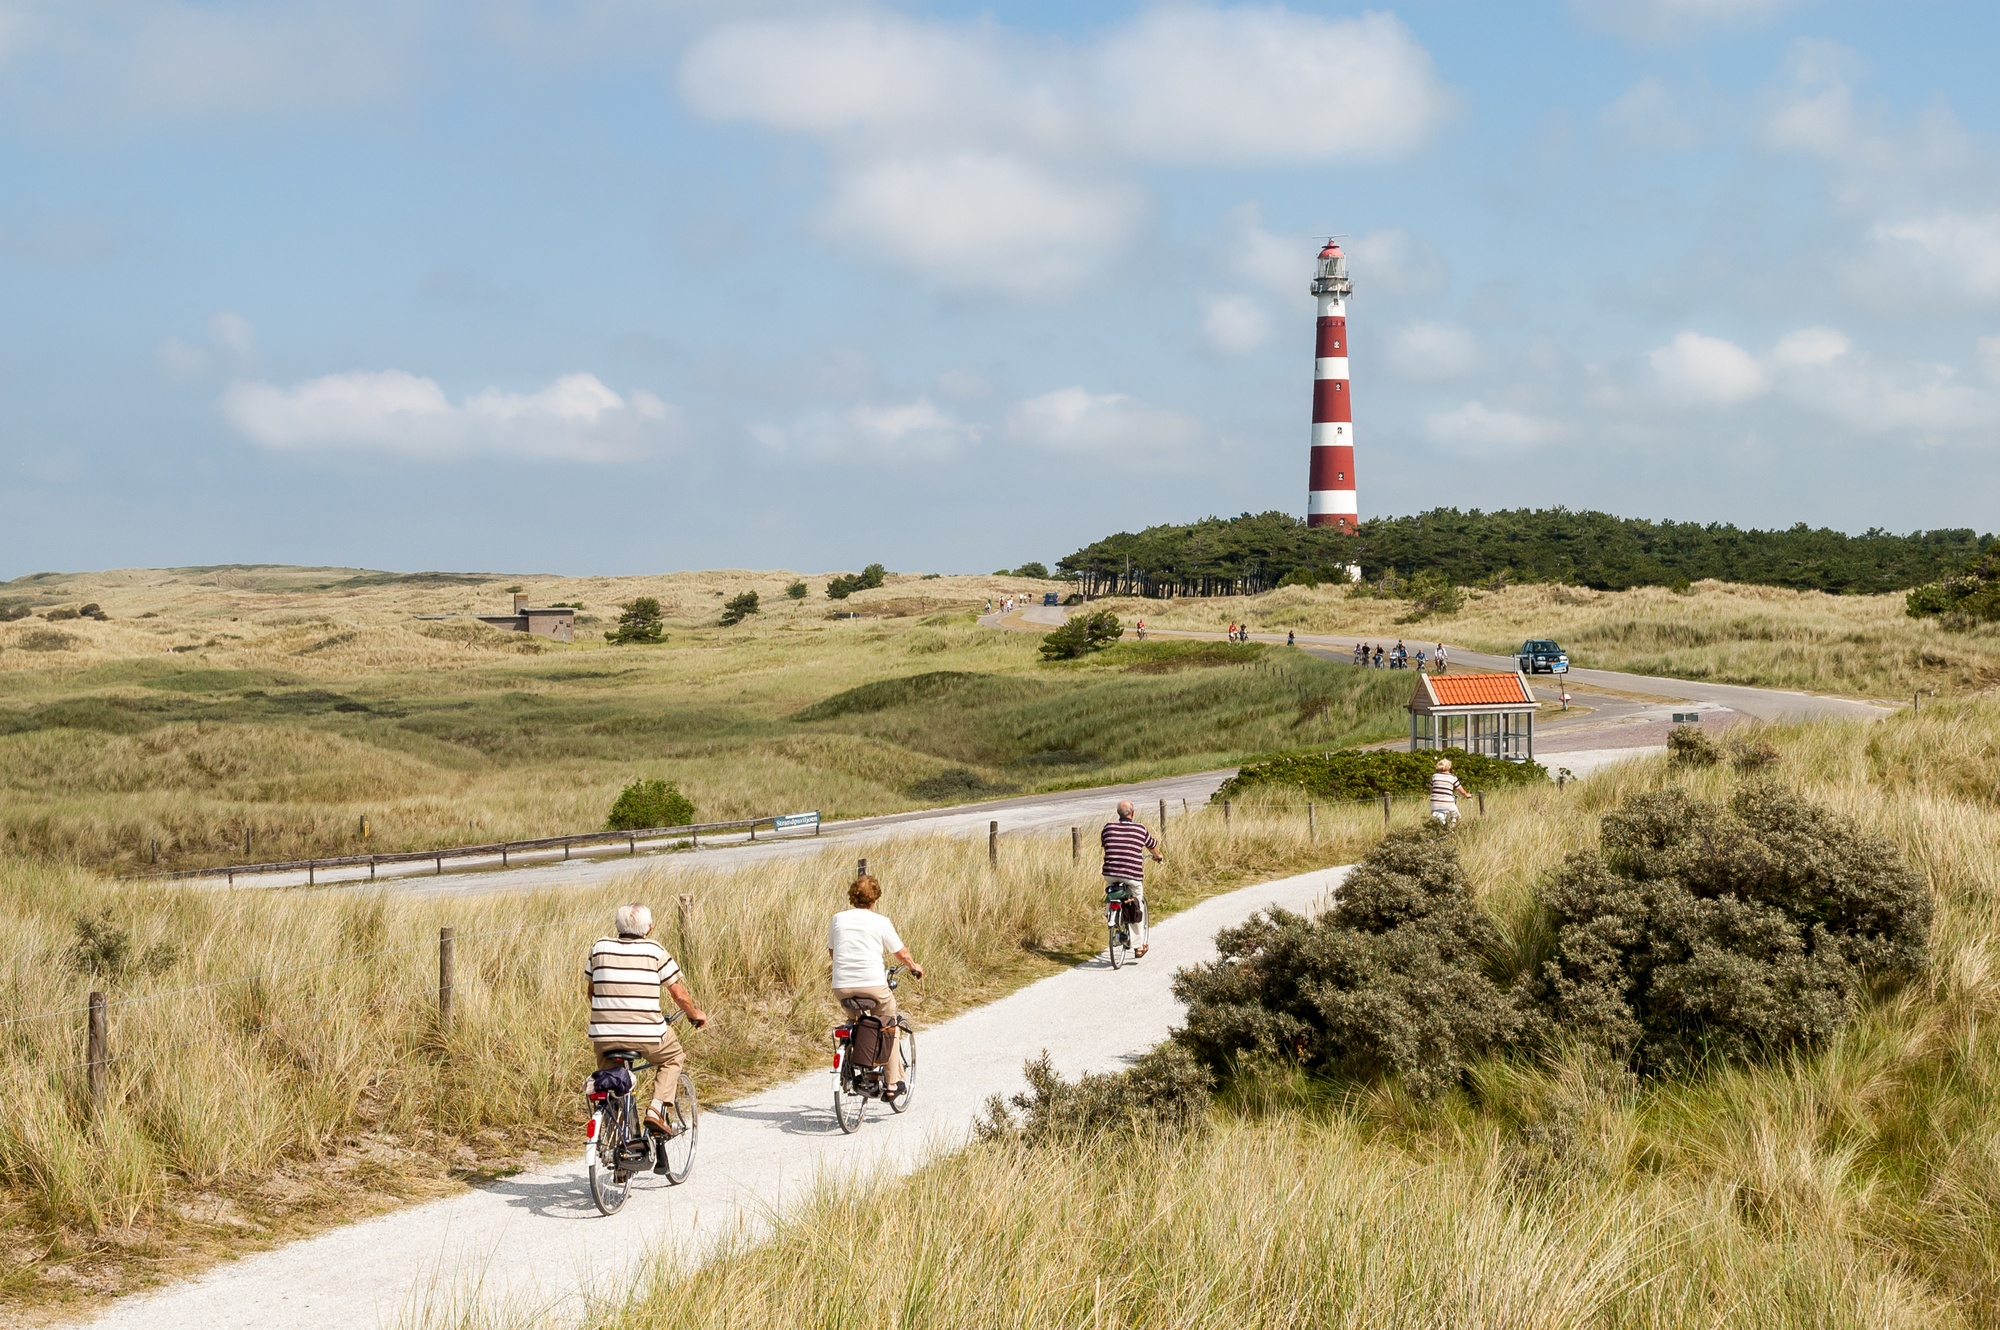 Bicyclists in Ameland, the Netherlands